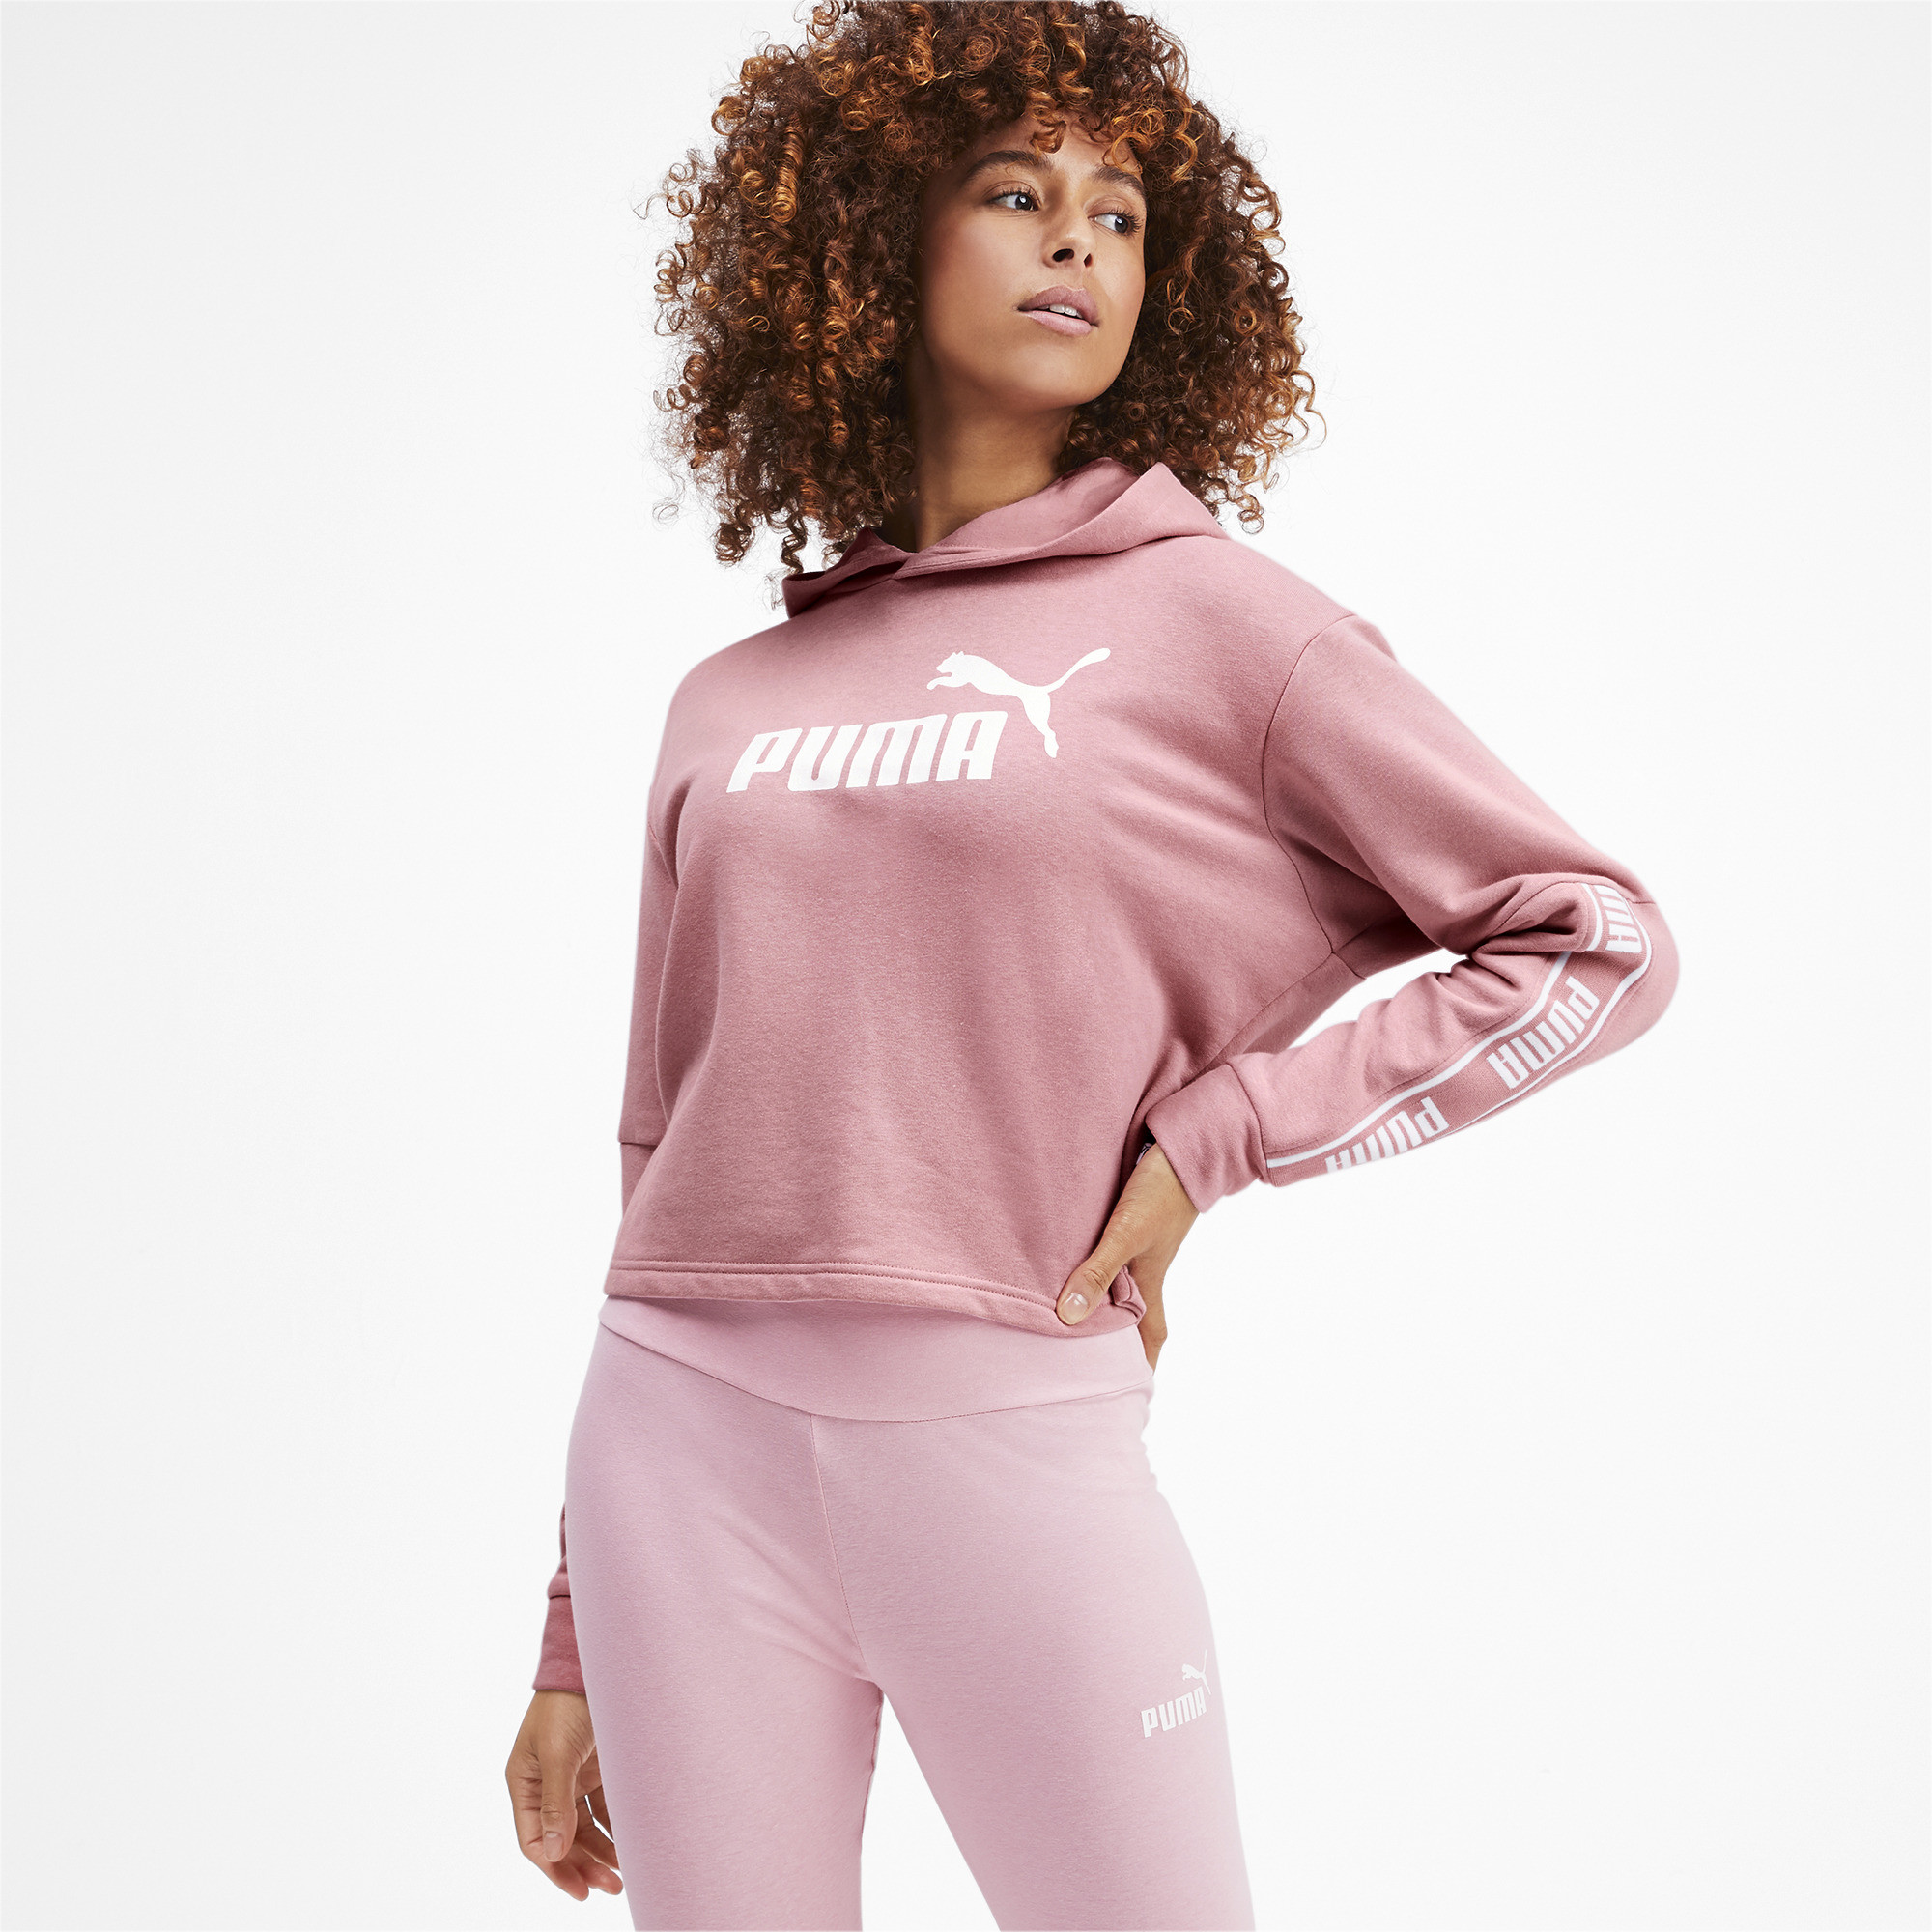 PUMA-Amplified-Women-039-s-Cropped-Hoodie-Women-Sweat-Basics thumbnail 9